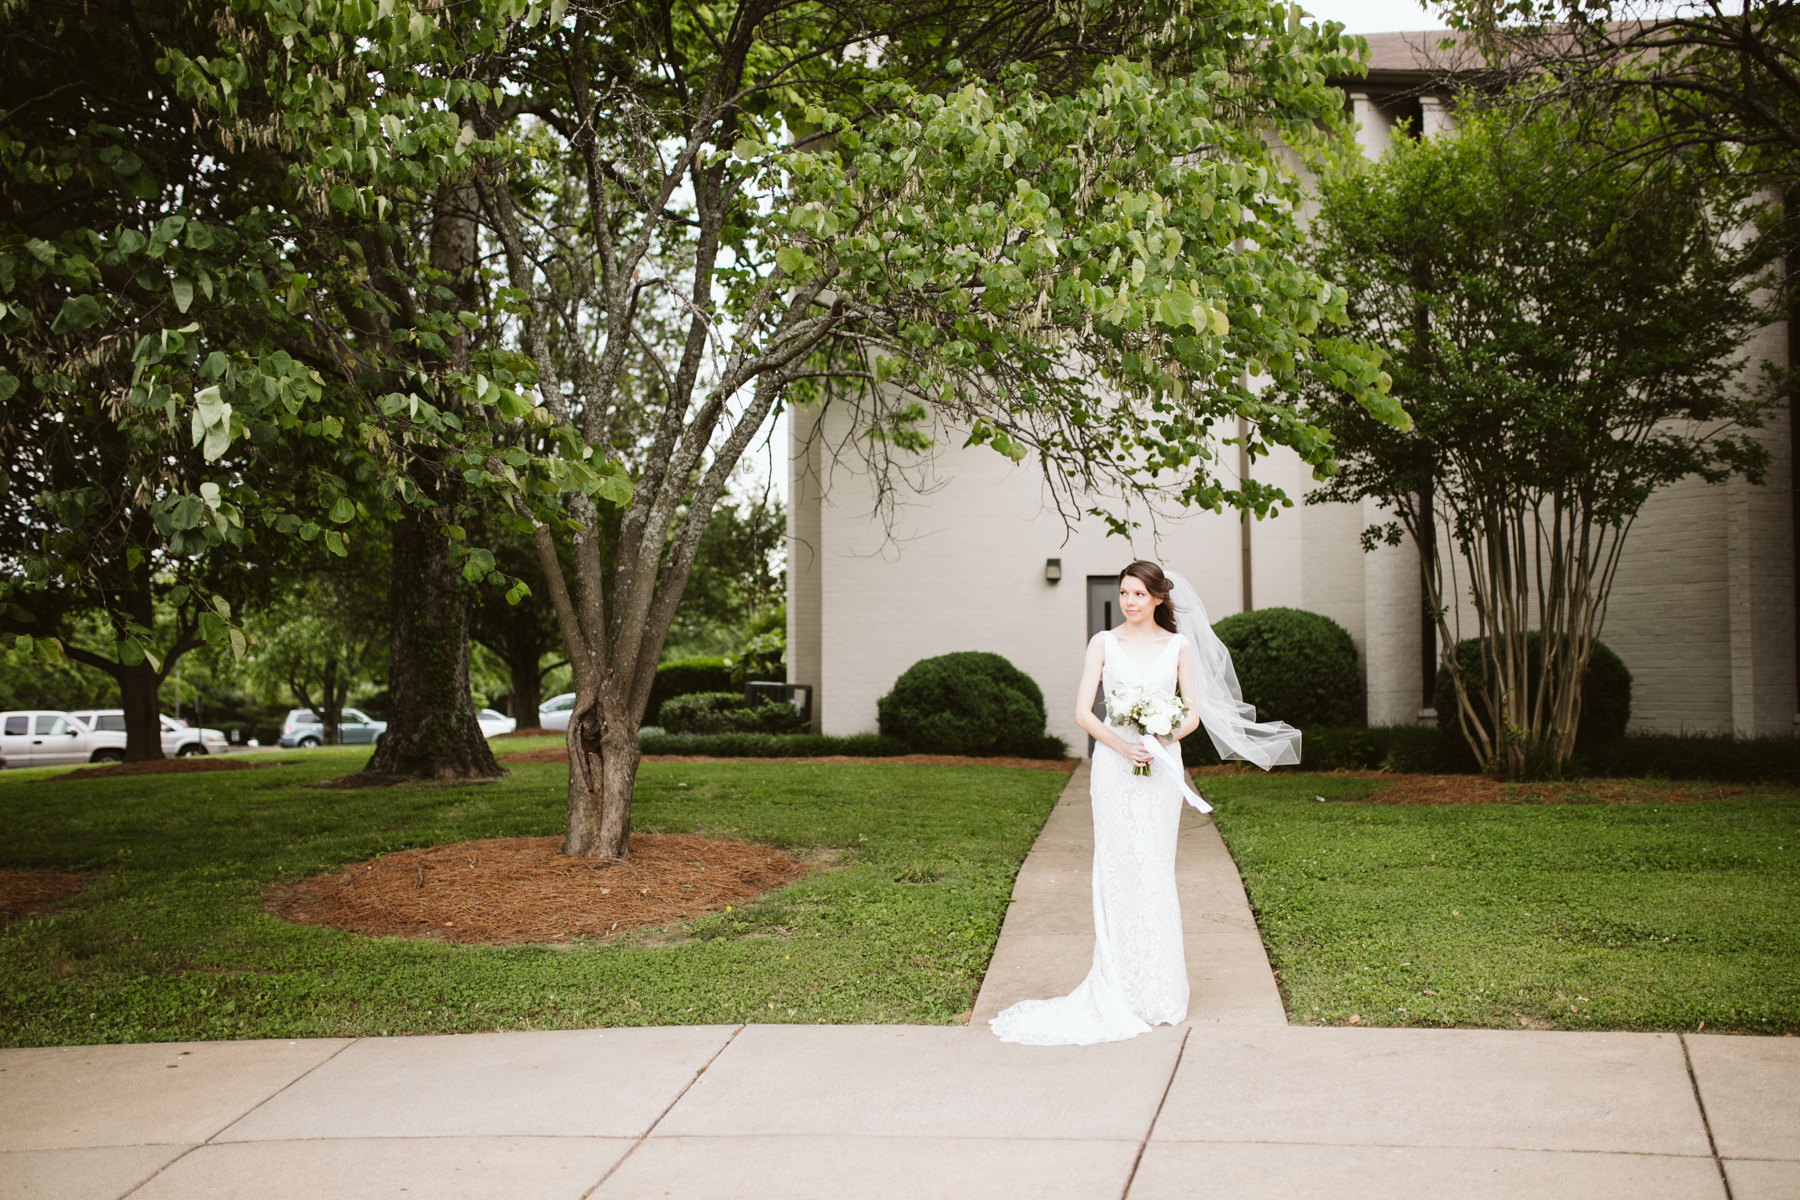 Bridal portraits outside the church before a rainy summer wedding at brentwood hills church in Nashville, tennessee